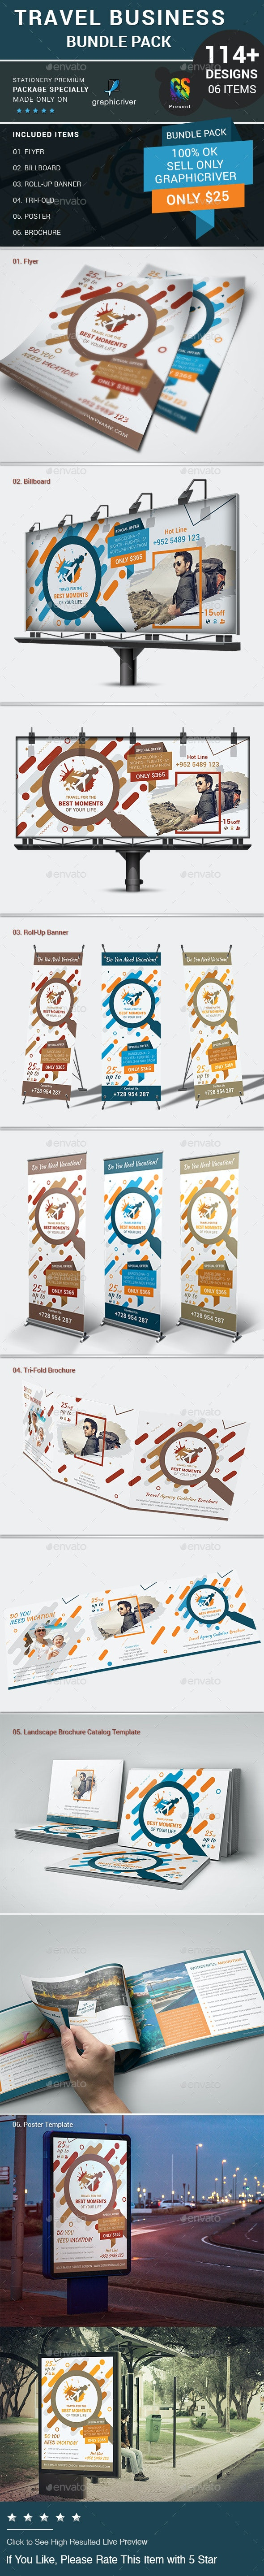 Travel Business Bundle Pack - Stationery Print Templates